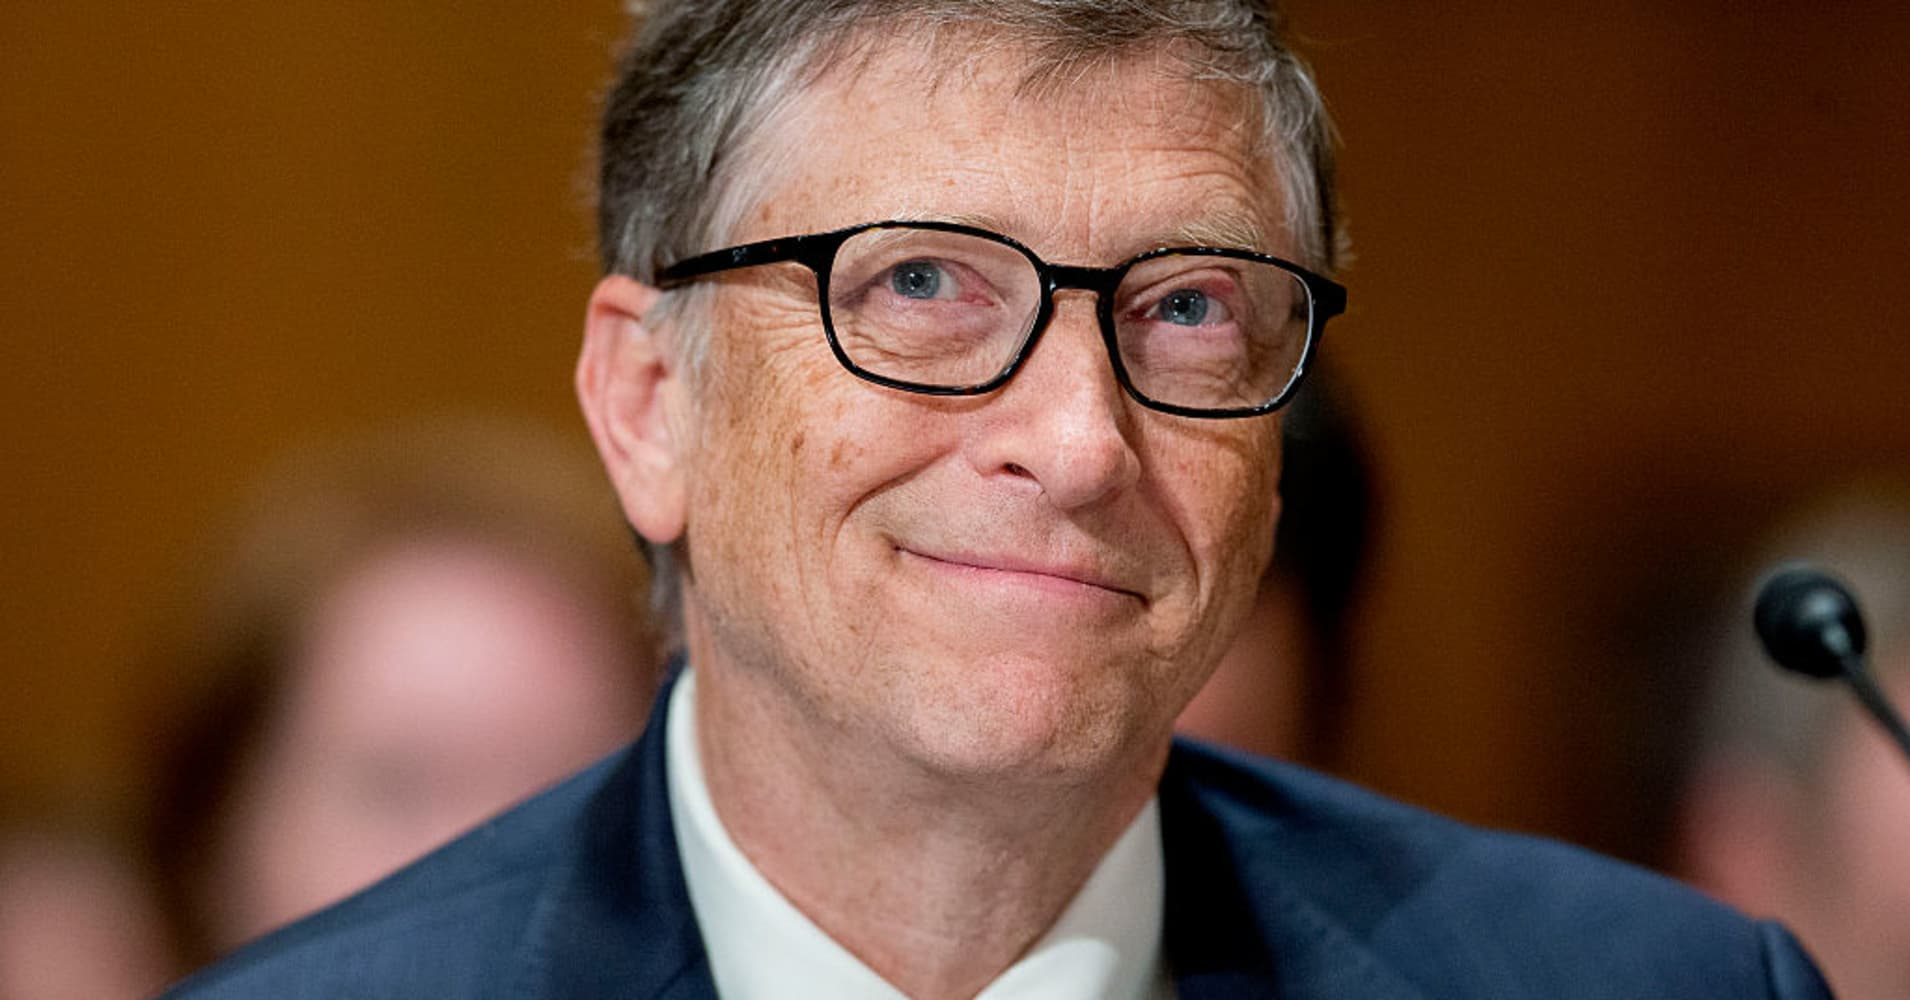 Bill Gates recommends this 'thrilling' book about corruption in finance